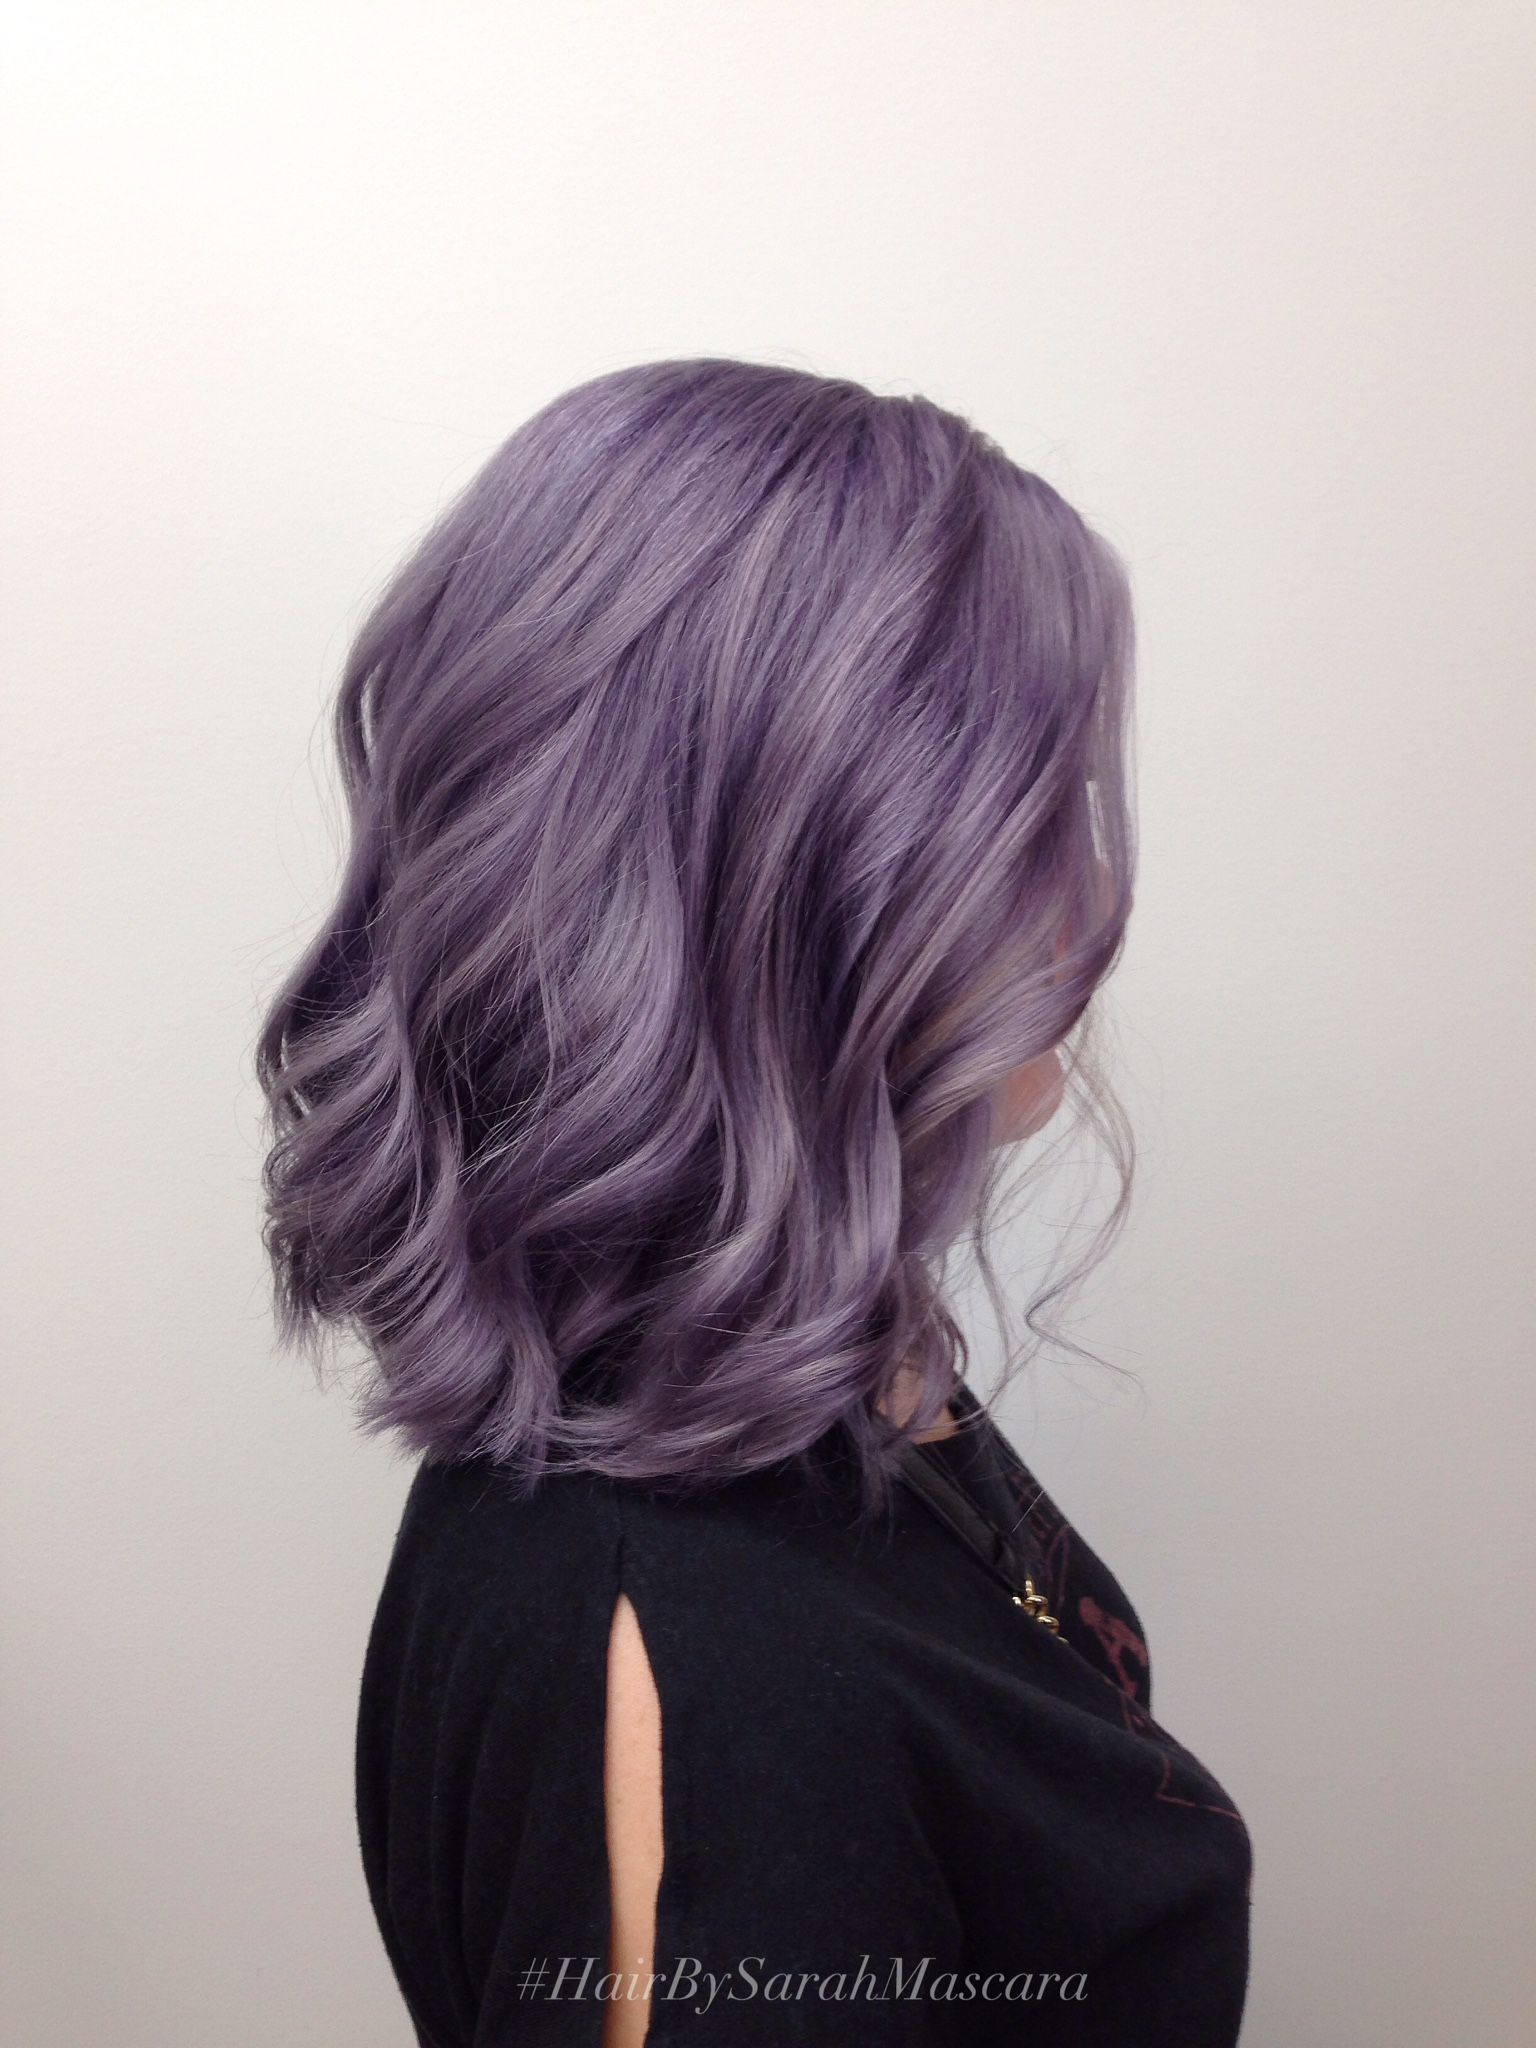 Obsessing Over This Beautiful Smokey Lavender Hair Who Else Would